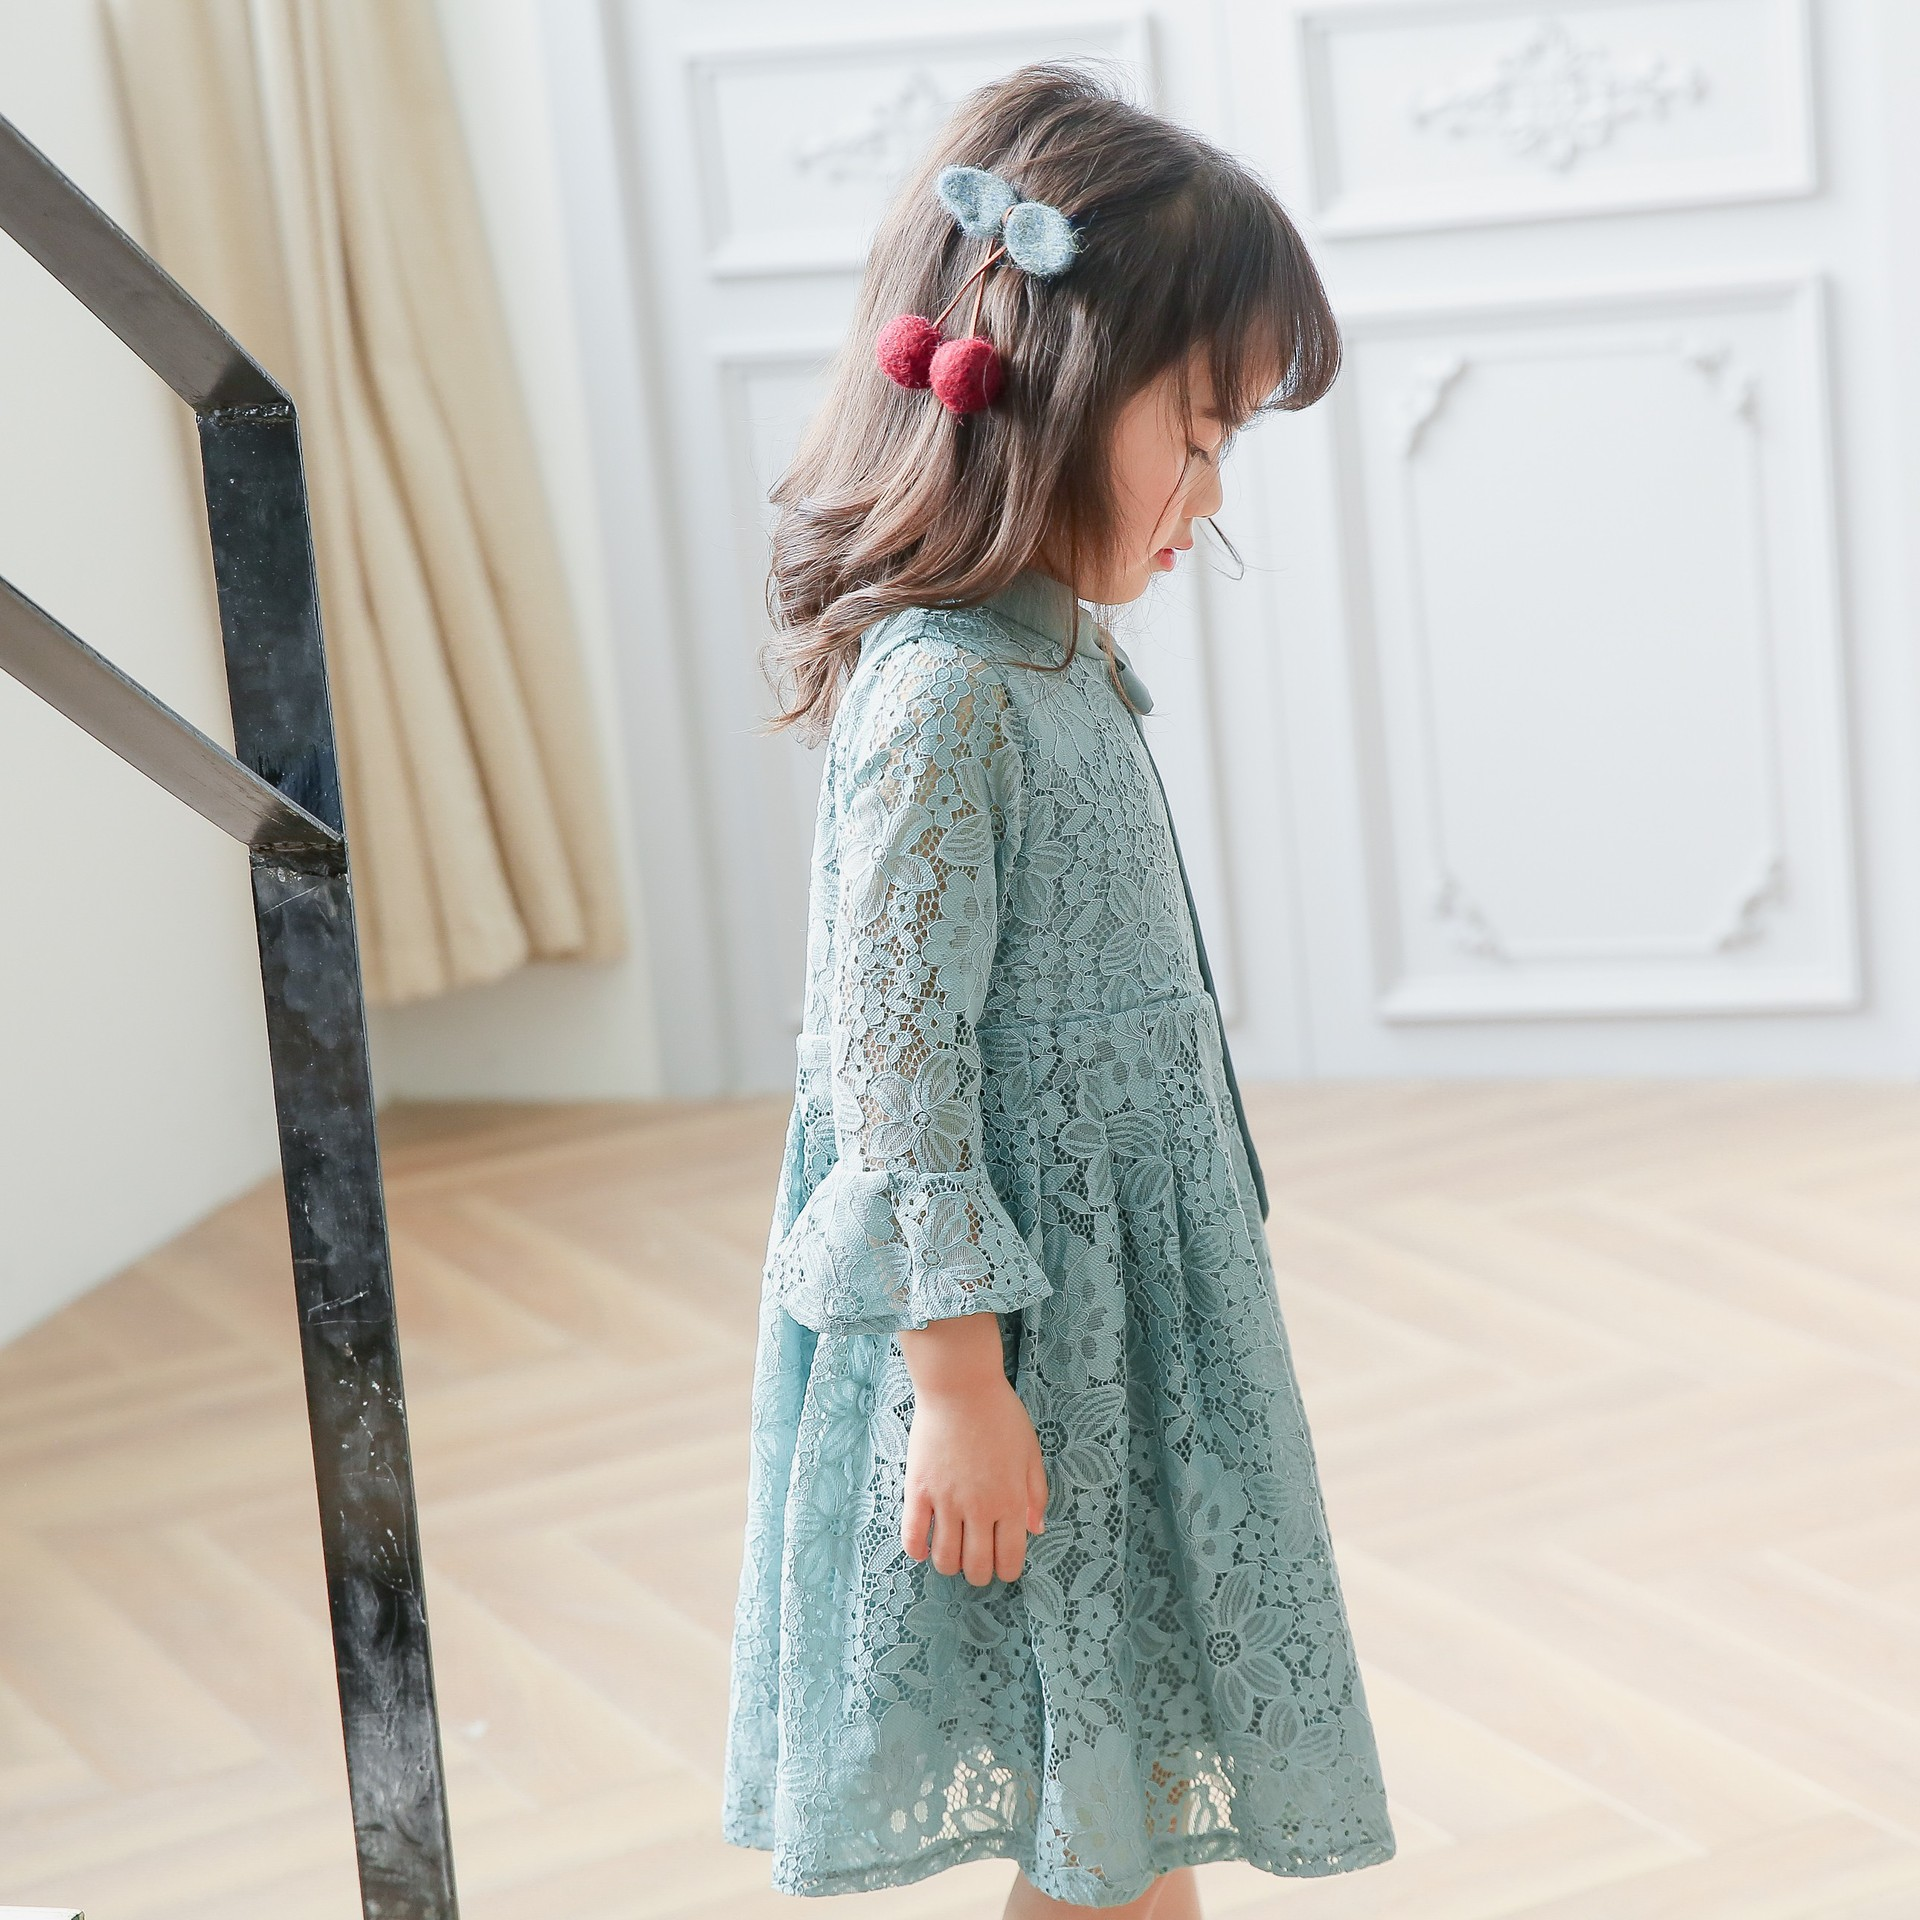 2017 Spring Style Children Dress New Hanfan Girl Sweet Sleeve Lace Girl Dress Free Shipping<br><br>Aliexpress